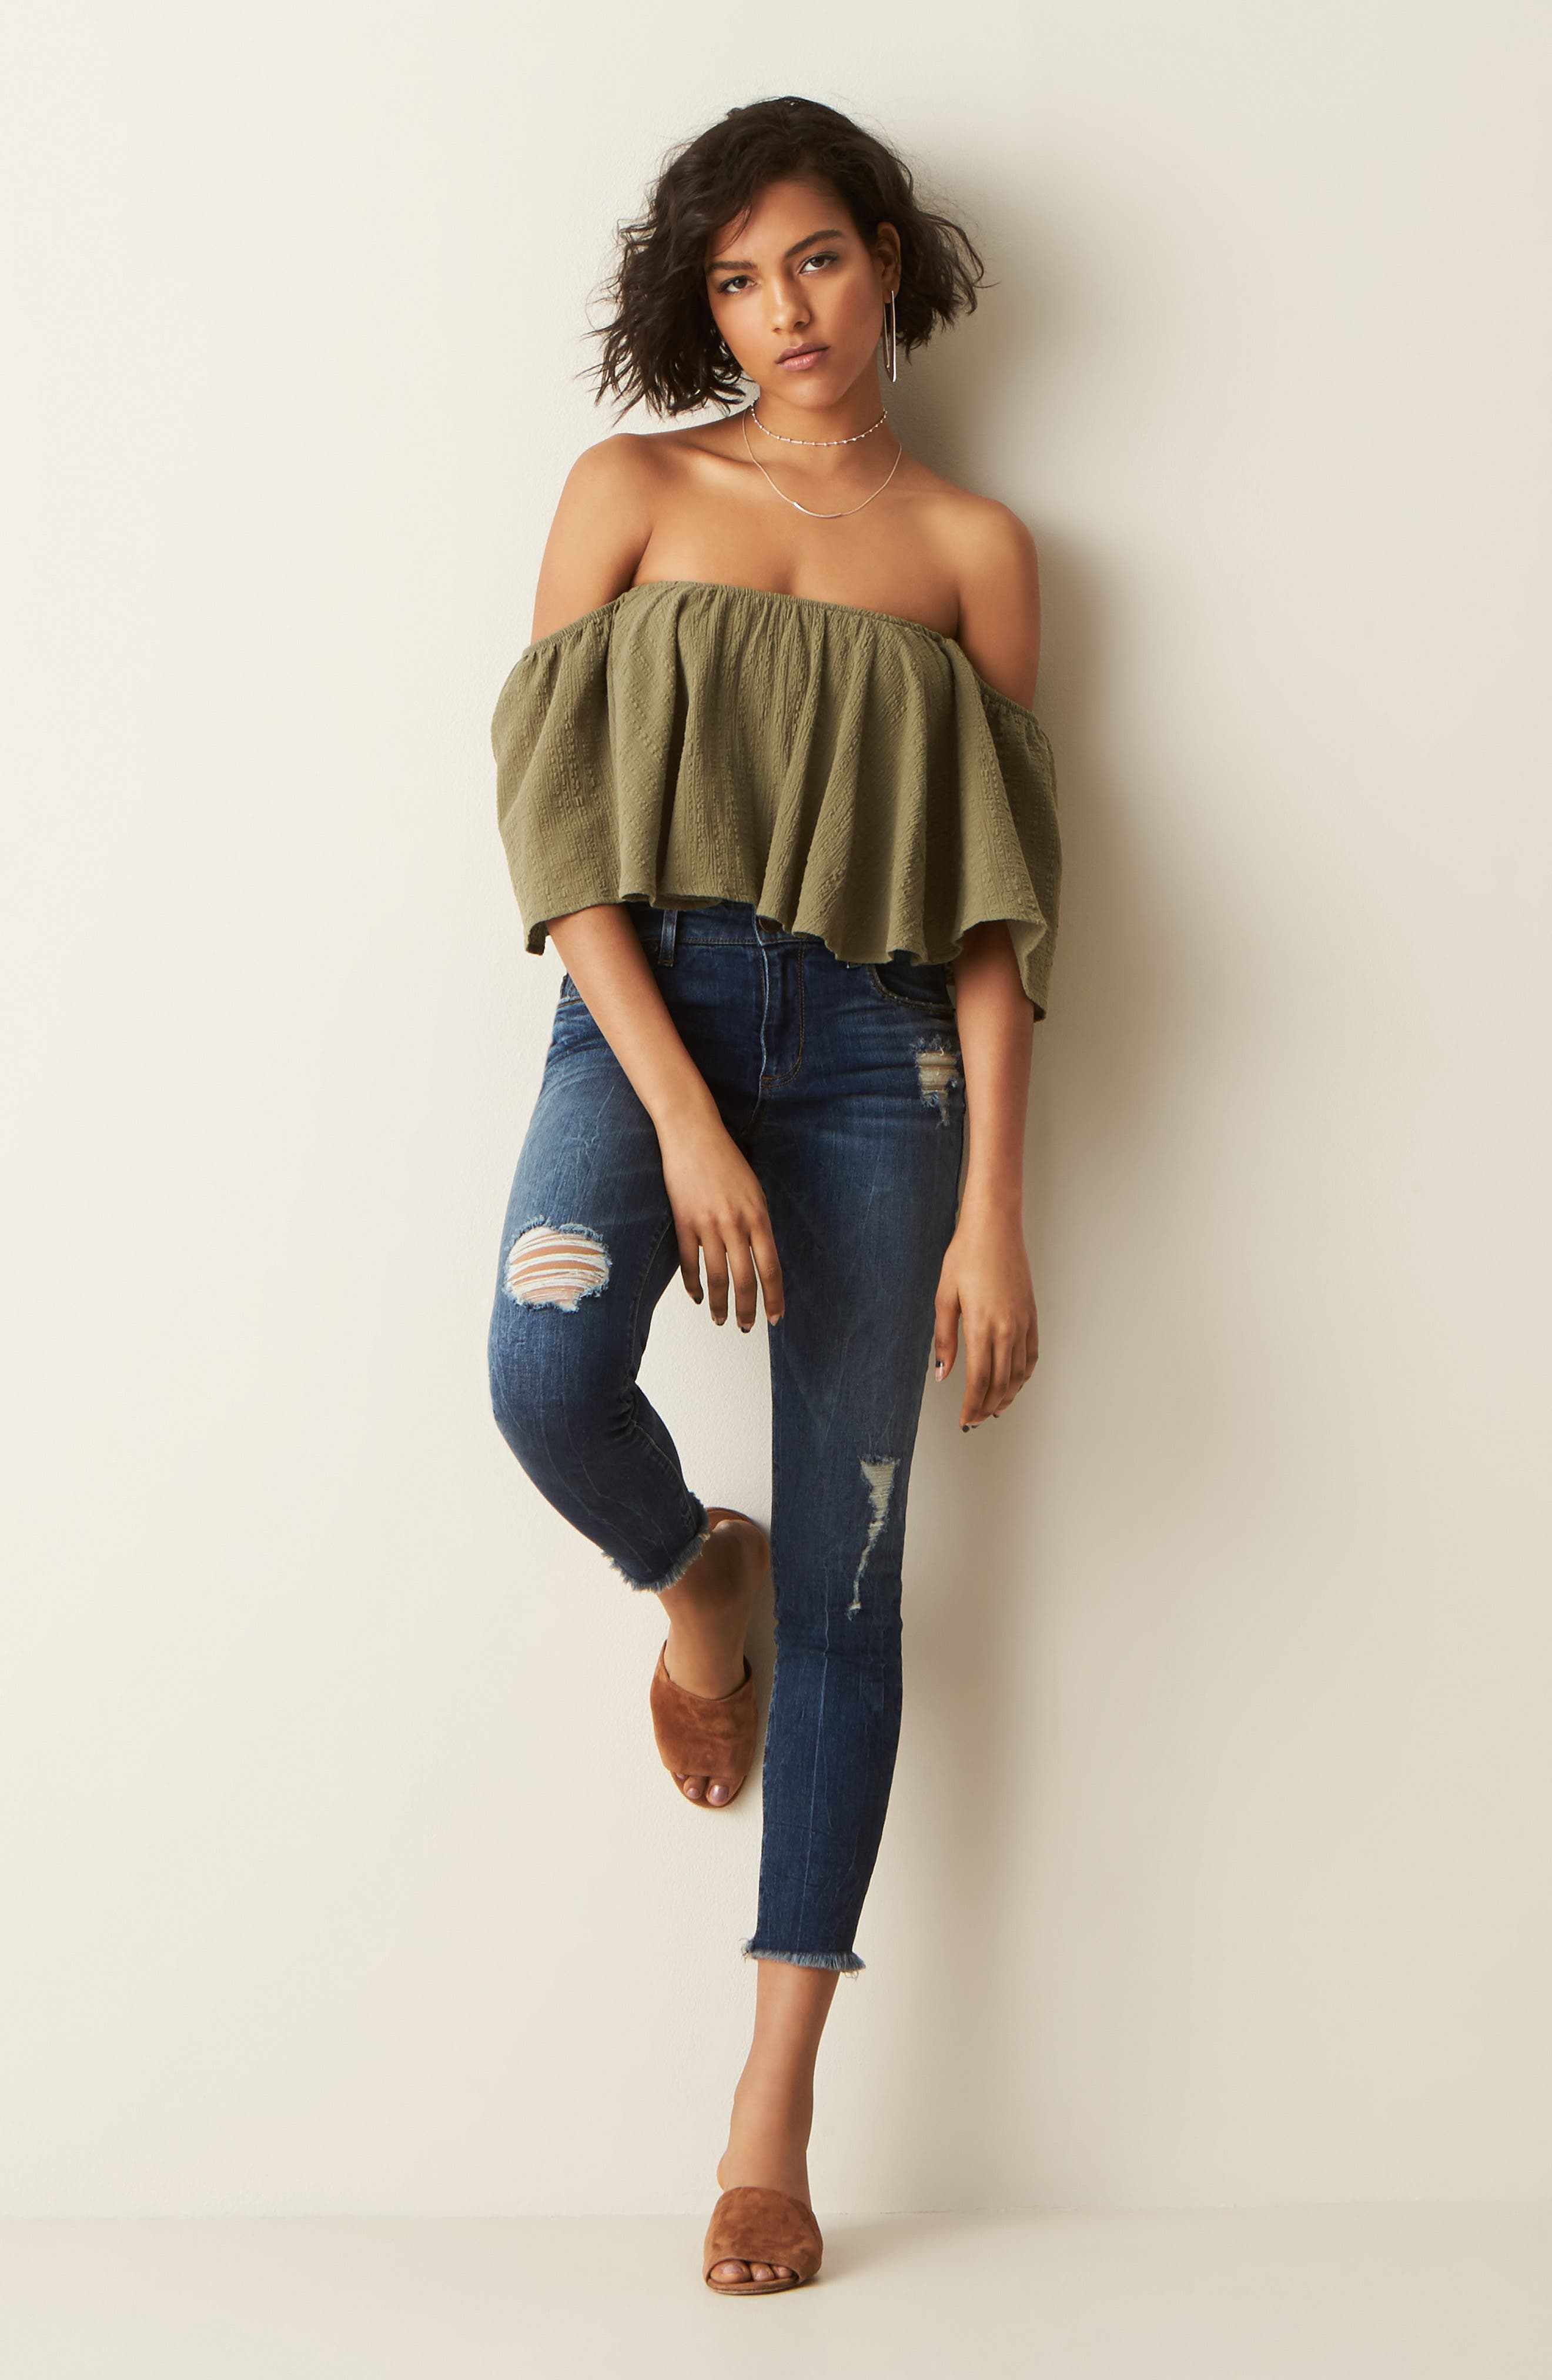 MOON RIVER Crop Top & STS Blue Jeans Outfit with Accessories